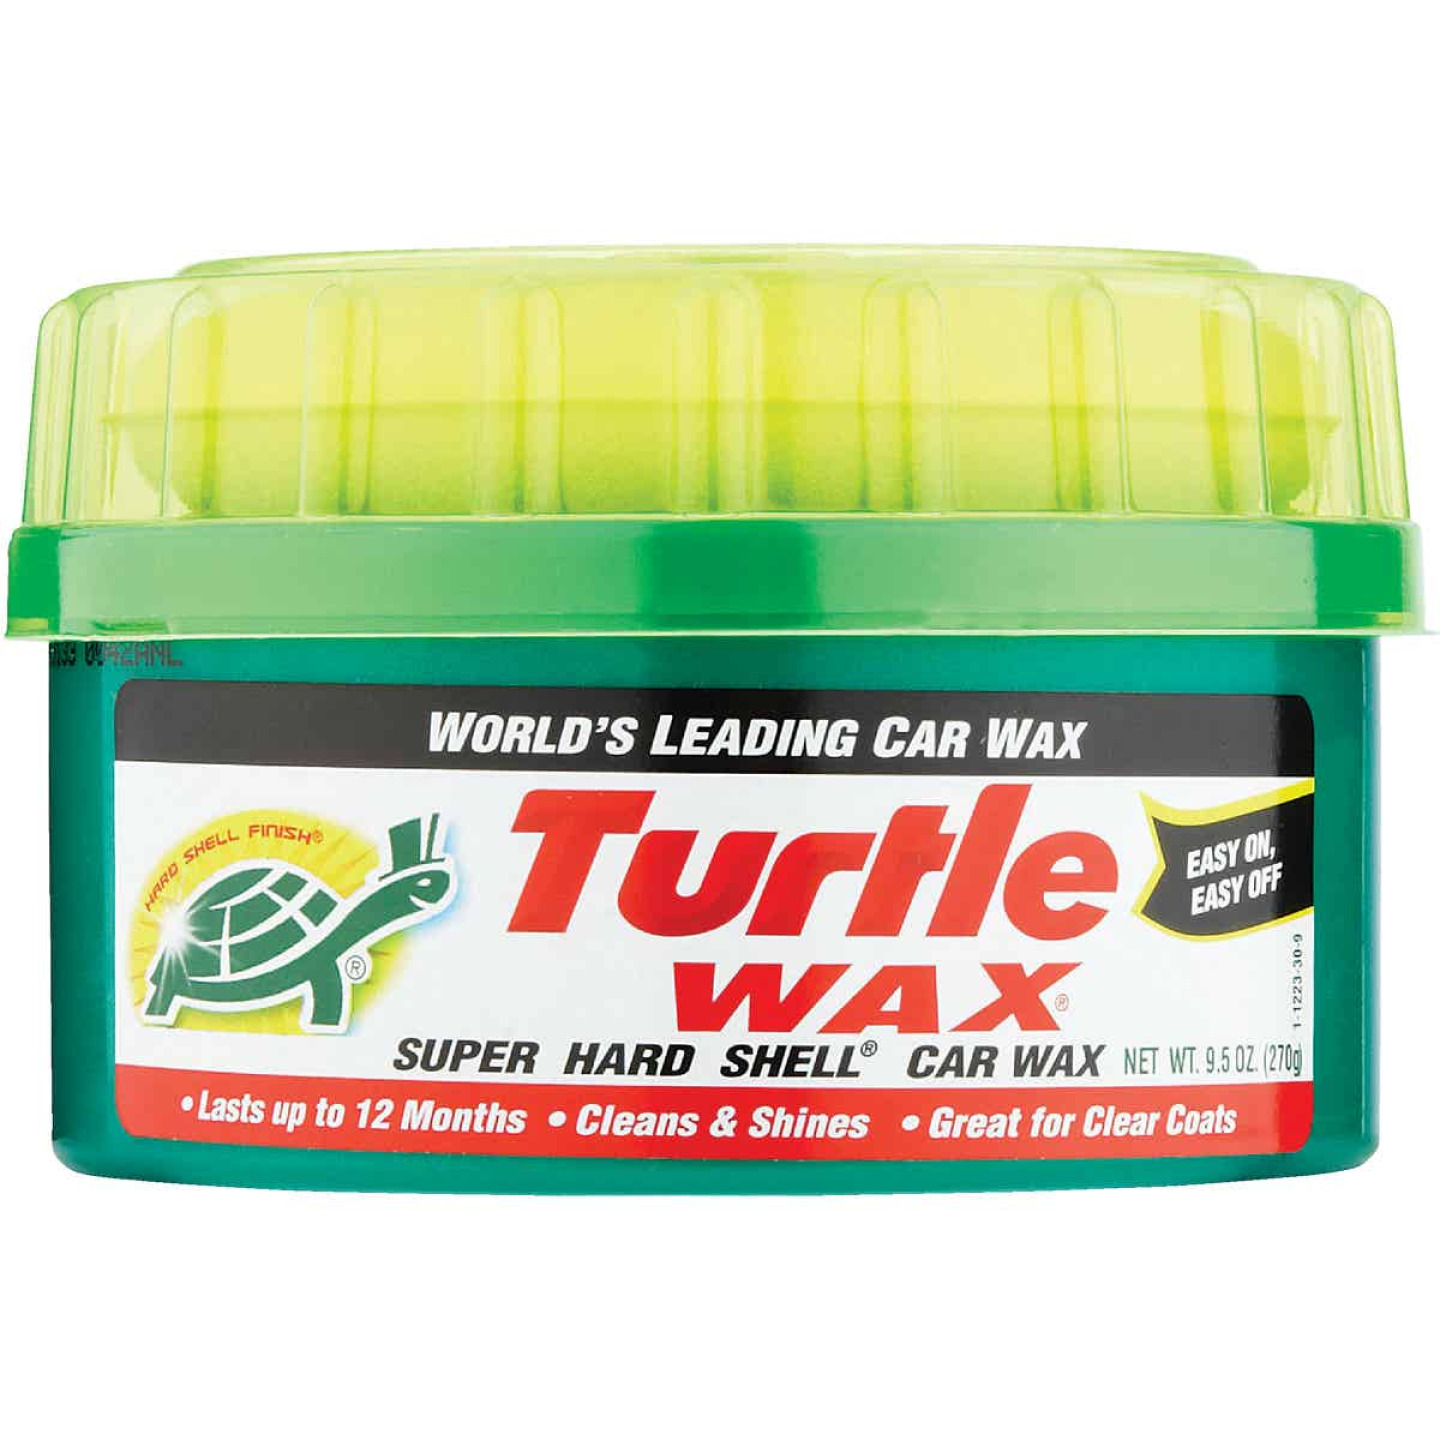 Turtle Wax Super Hard Shell Paste 9.5 Oz. Car Wax Image 2